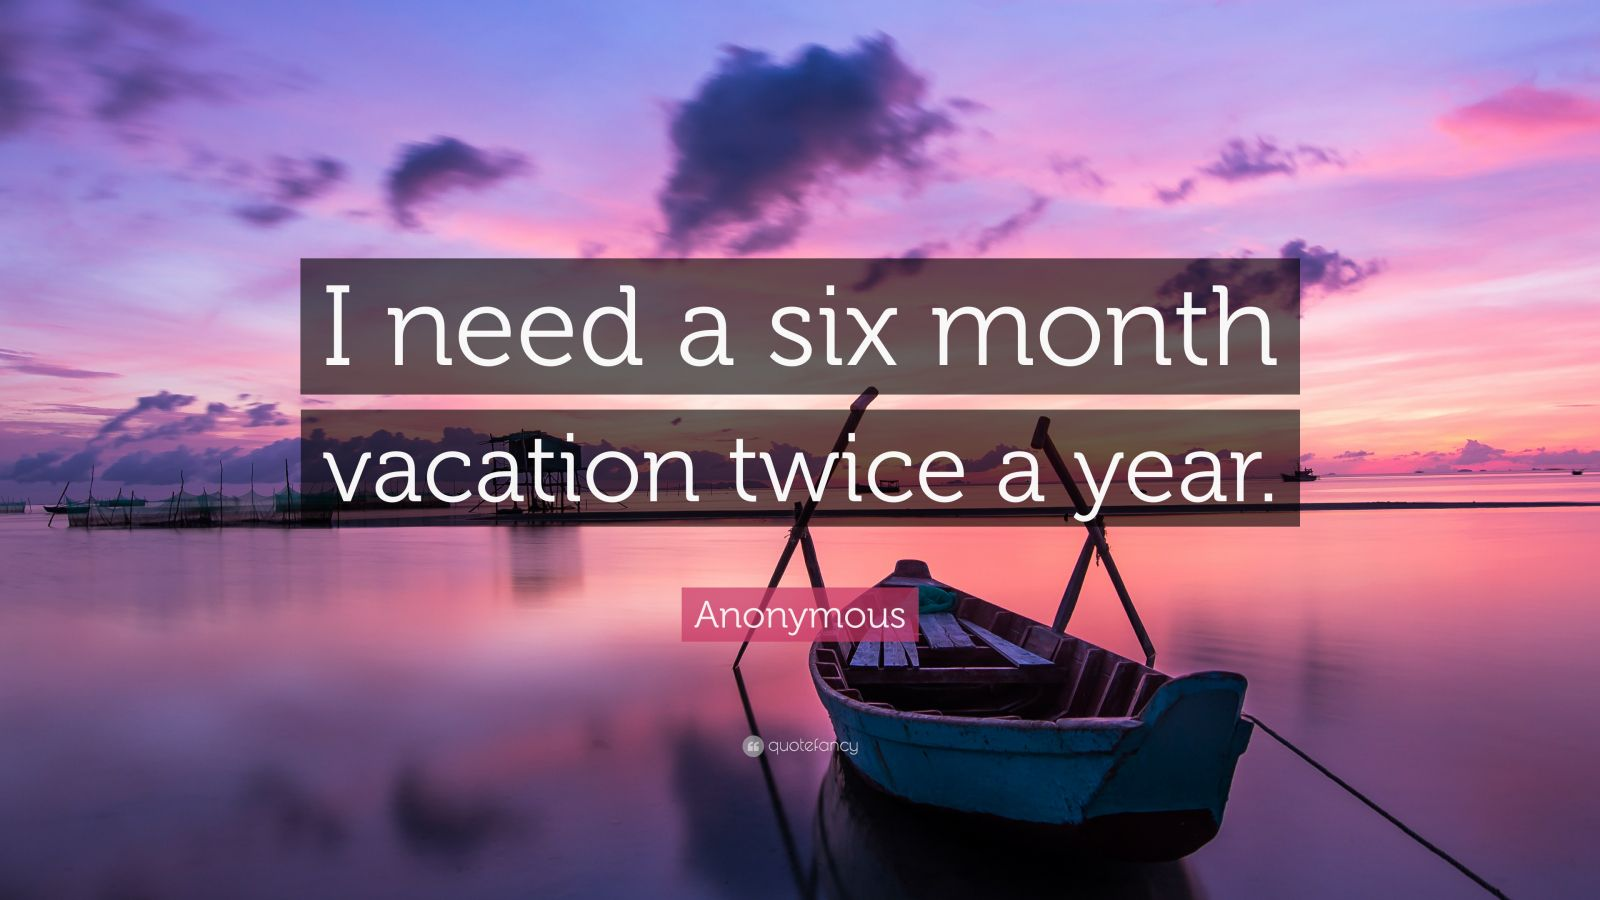 Anonymous Quote I need a six month vacation twice a year